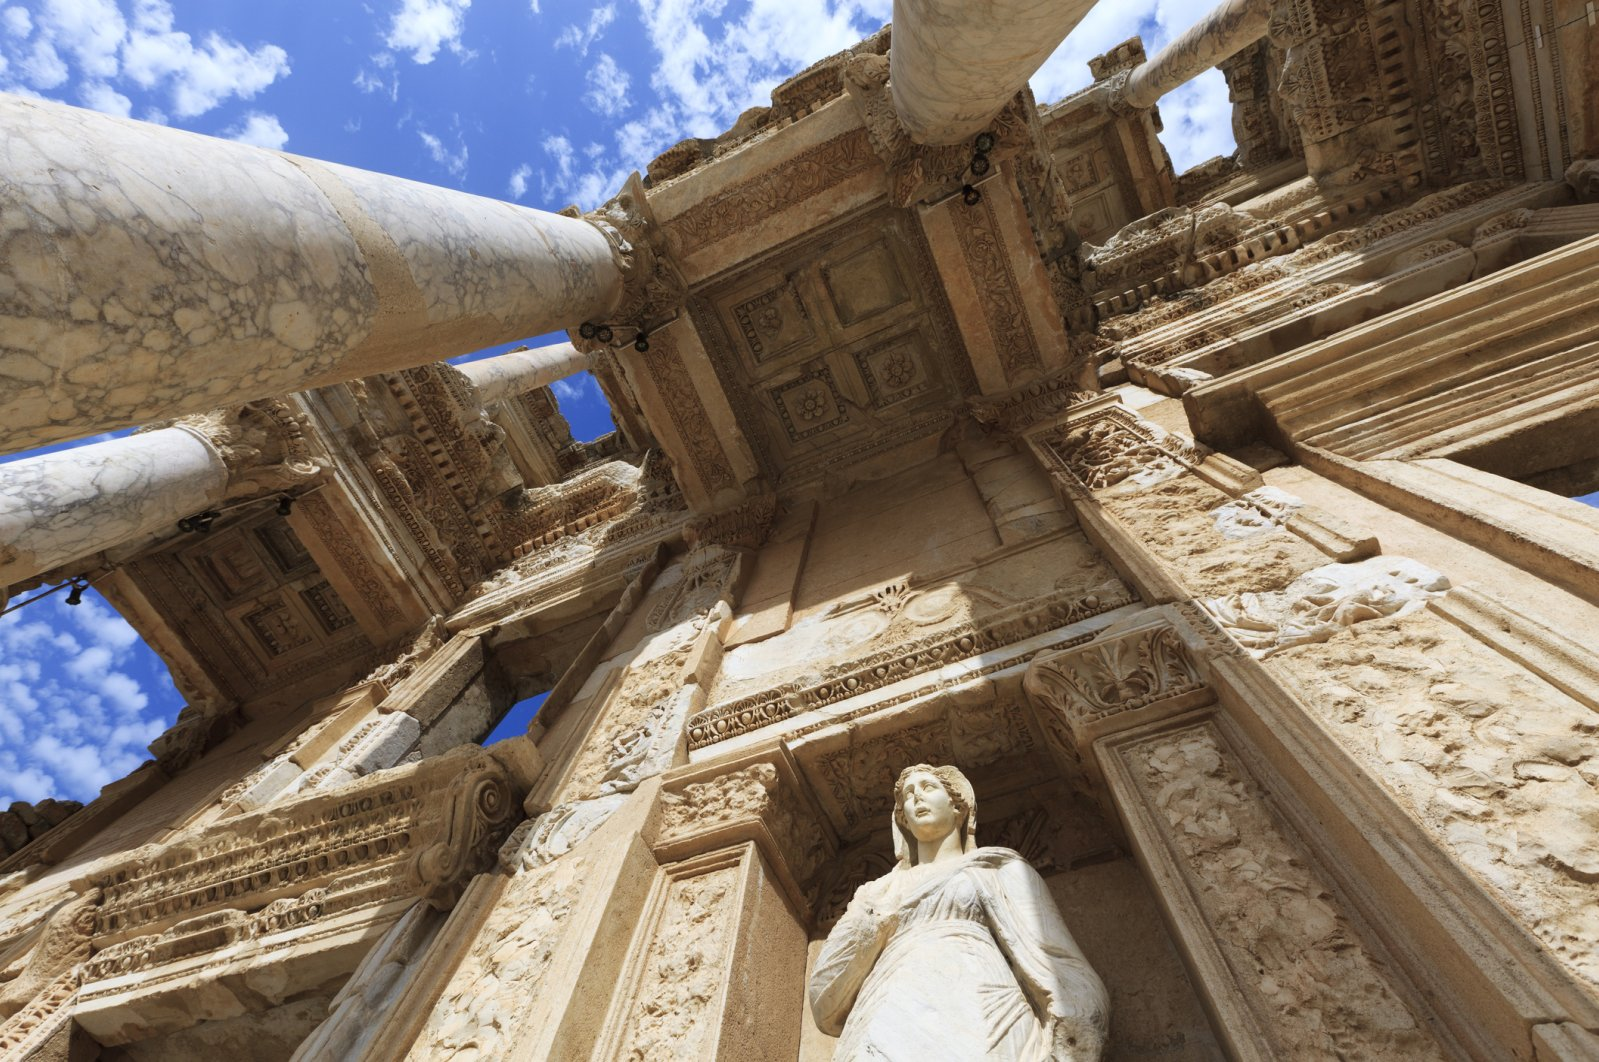 The Library of Celsus was built in A.D.135 in the ancient city of Ephesus. (iStock Photo)